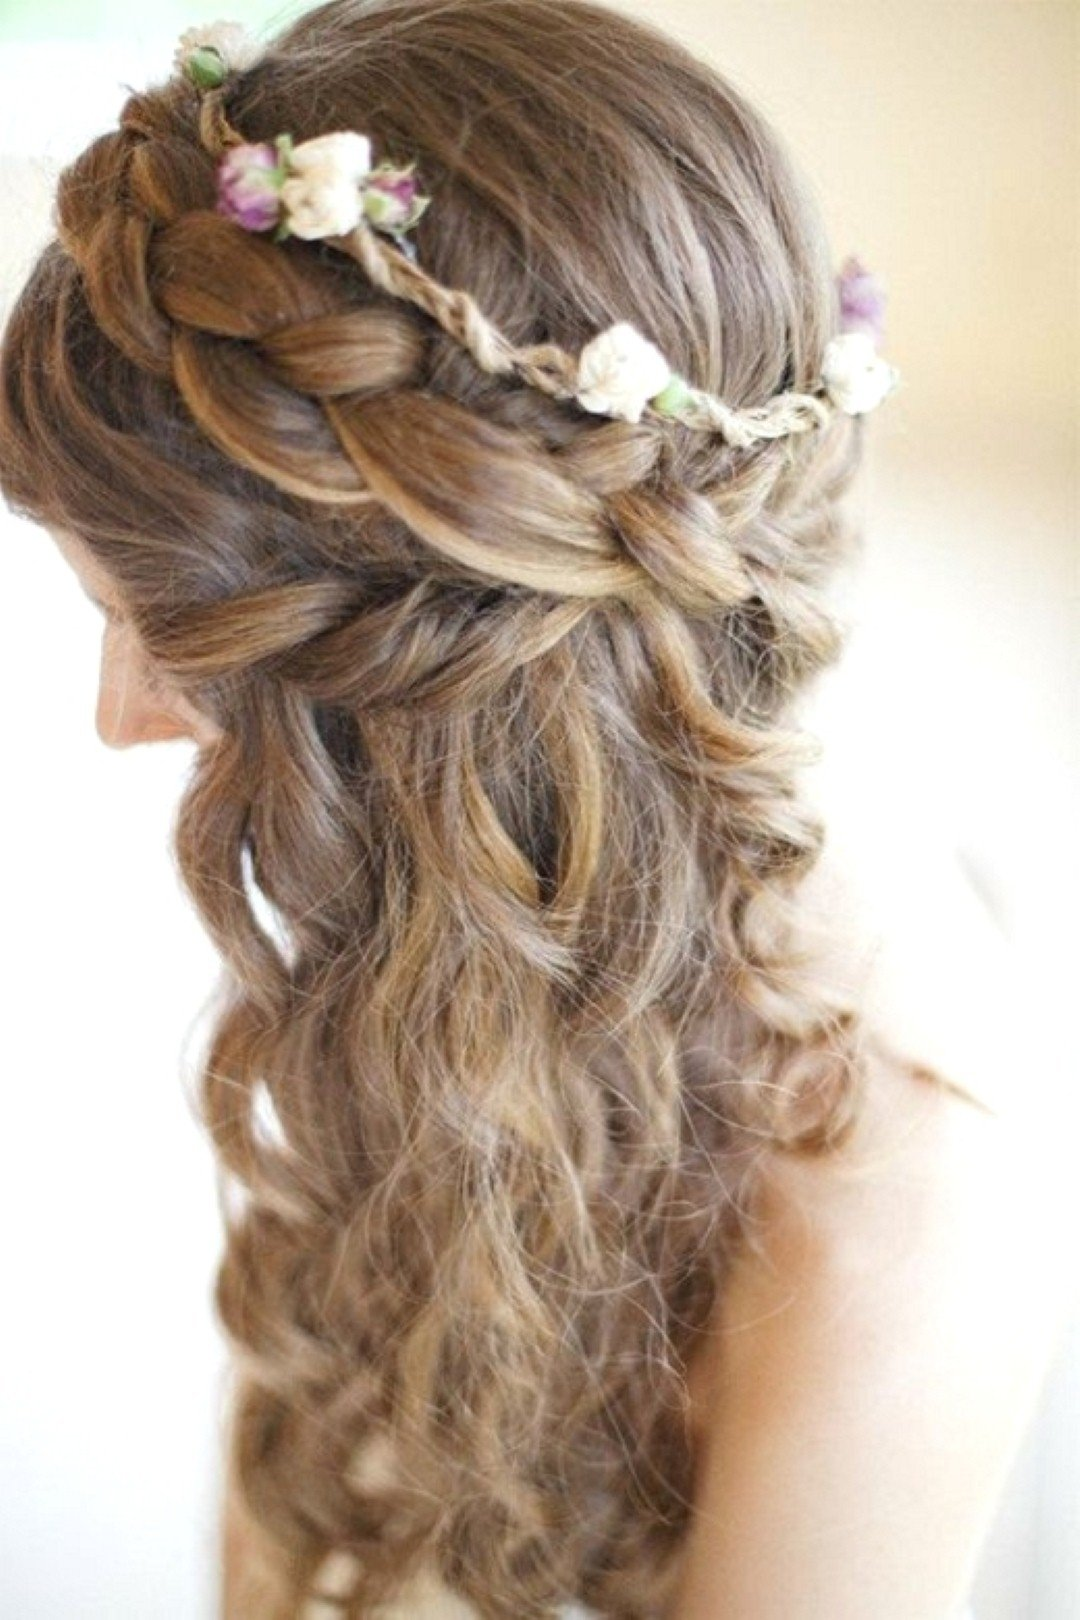 10 Most Recommended Homecoming Hair Ideas For Long Hair 30 prettiest homecoming hairstyles ideas prom hairstyles prom and 1